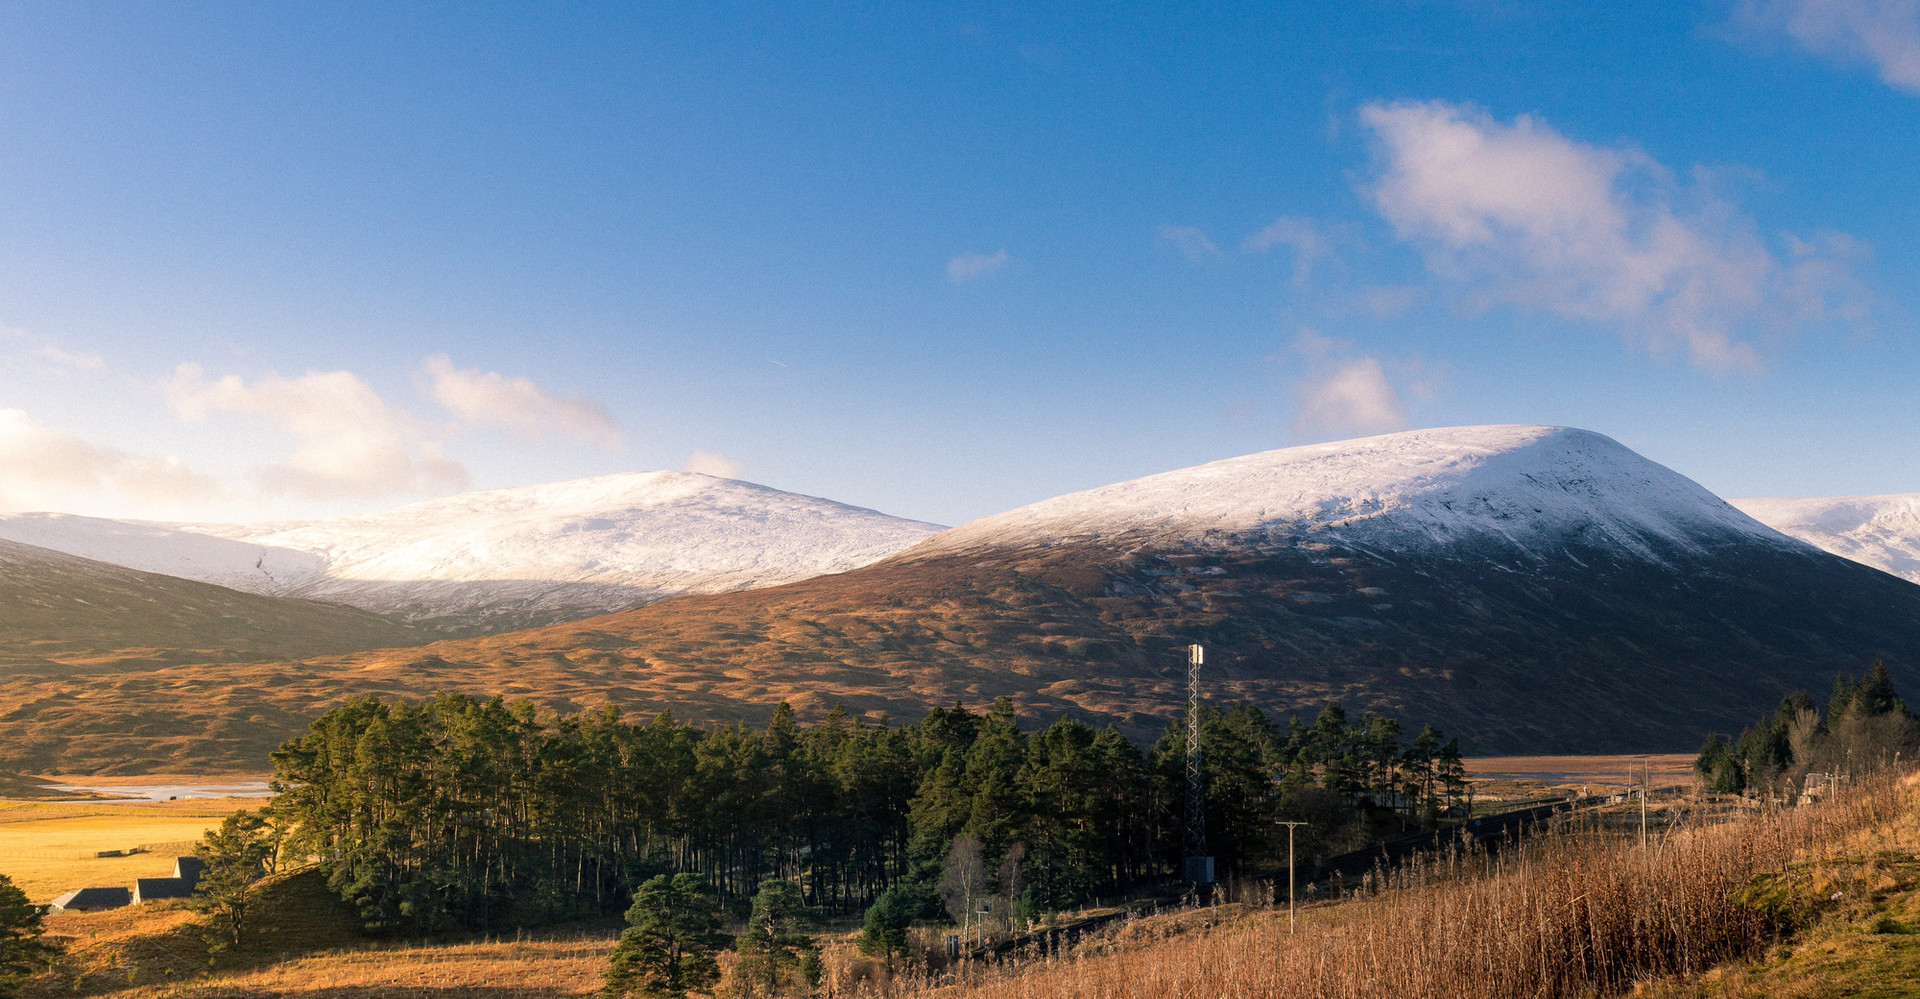 snowy mountains in perthshire scotland